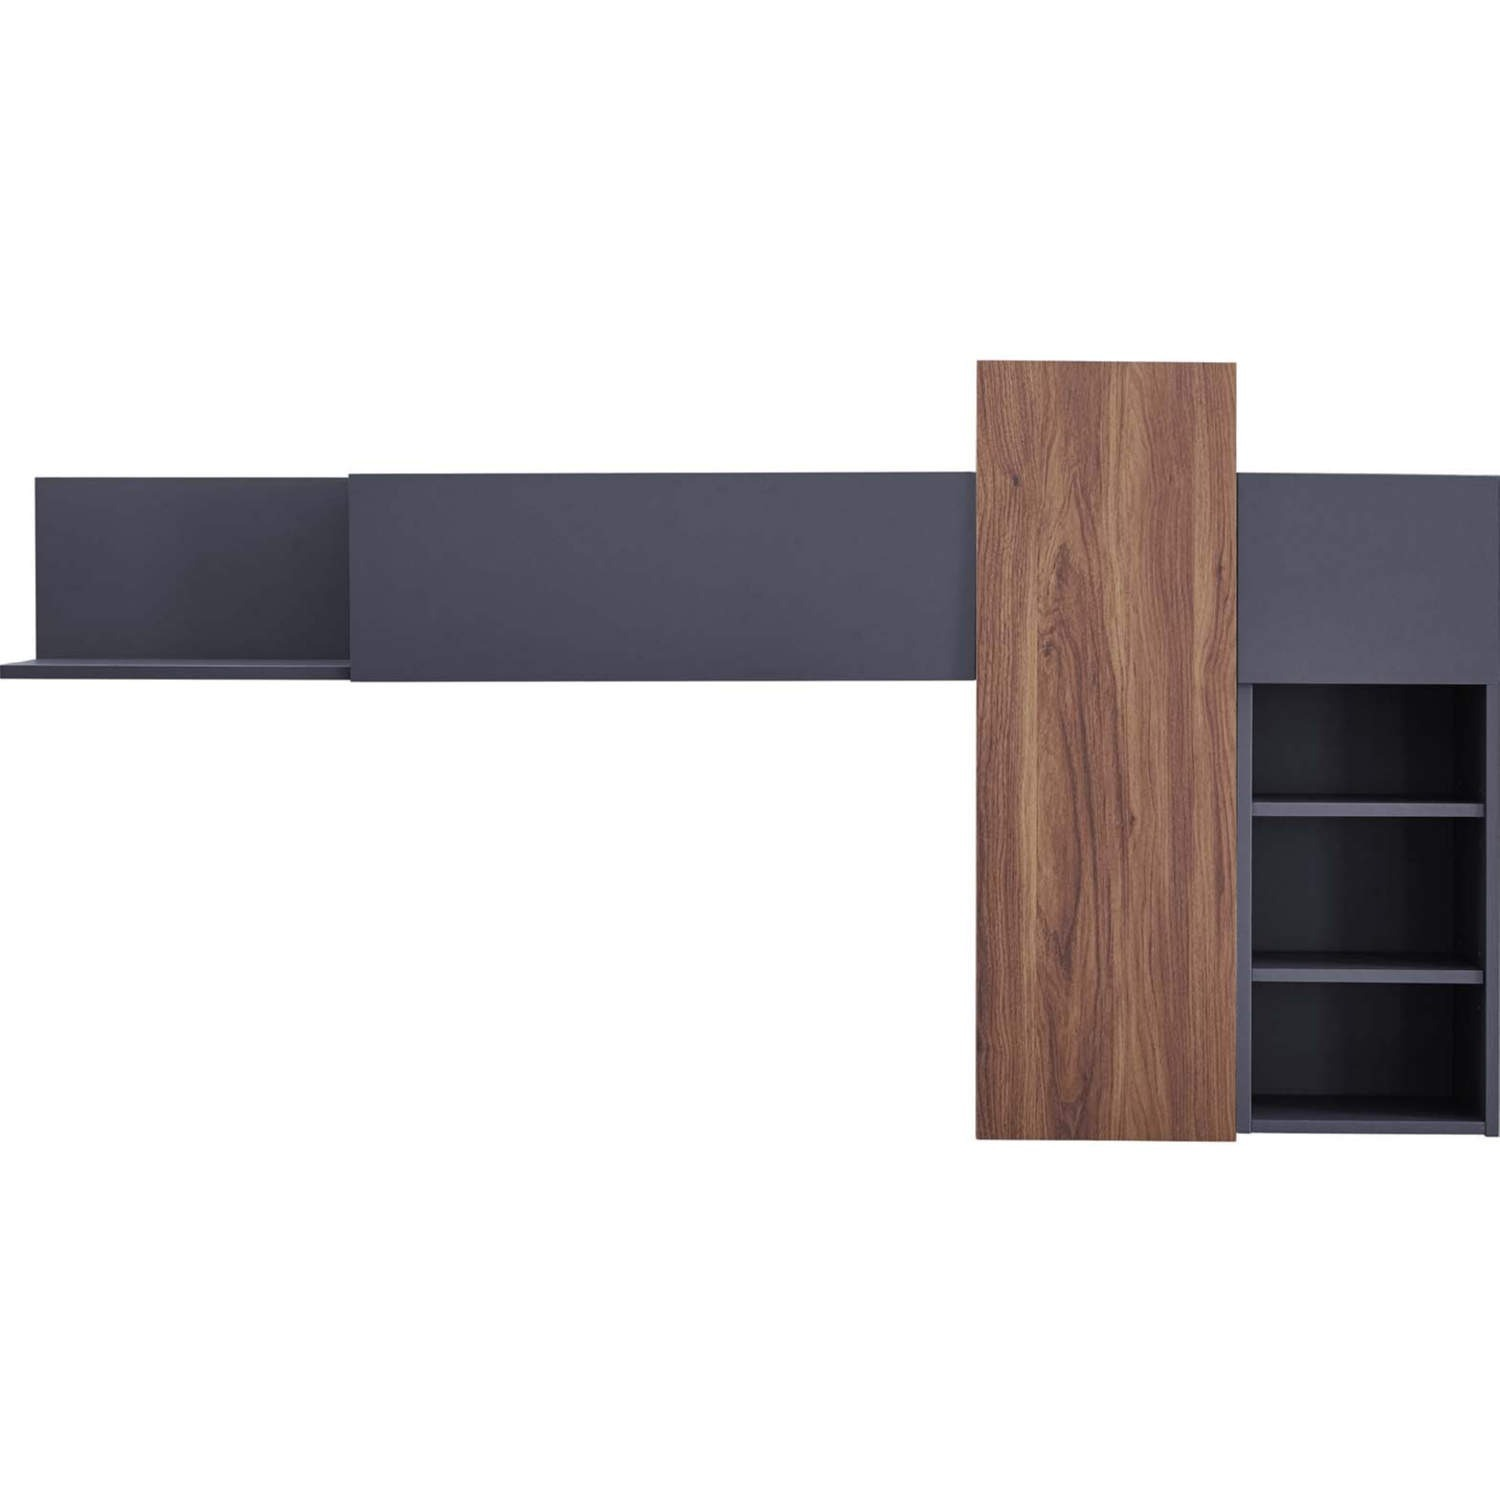 Wall Mounted Shelves In Gray & Walnut Finish - image-1